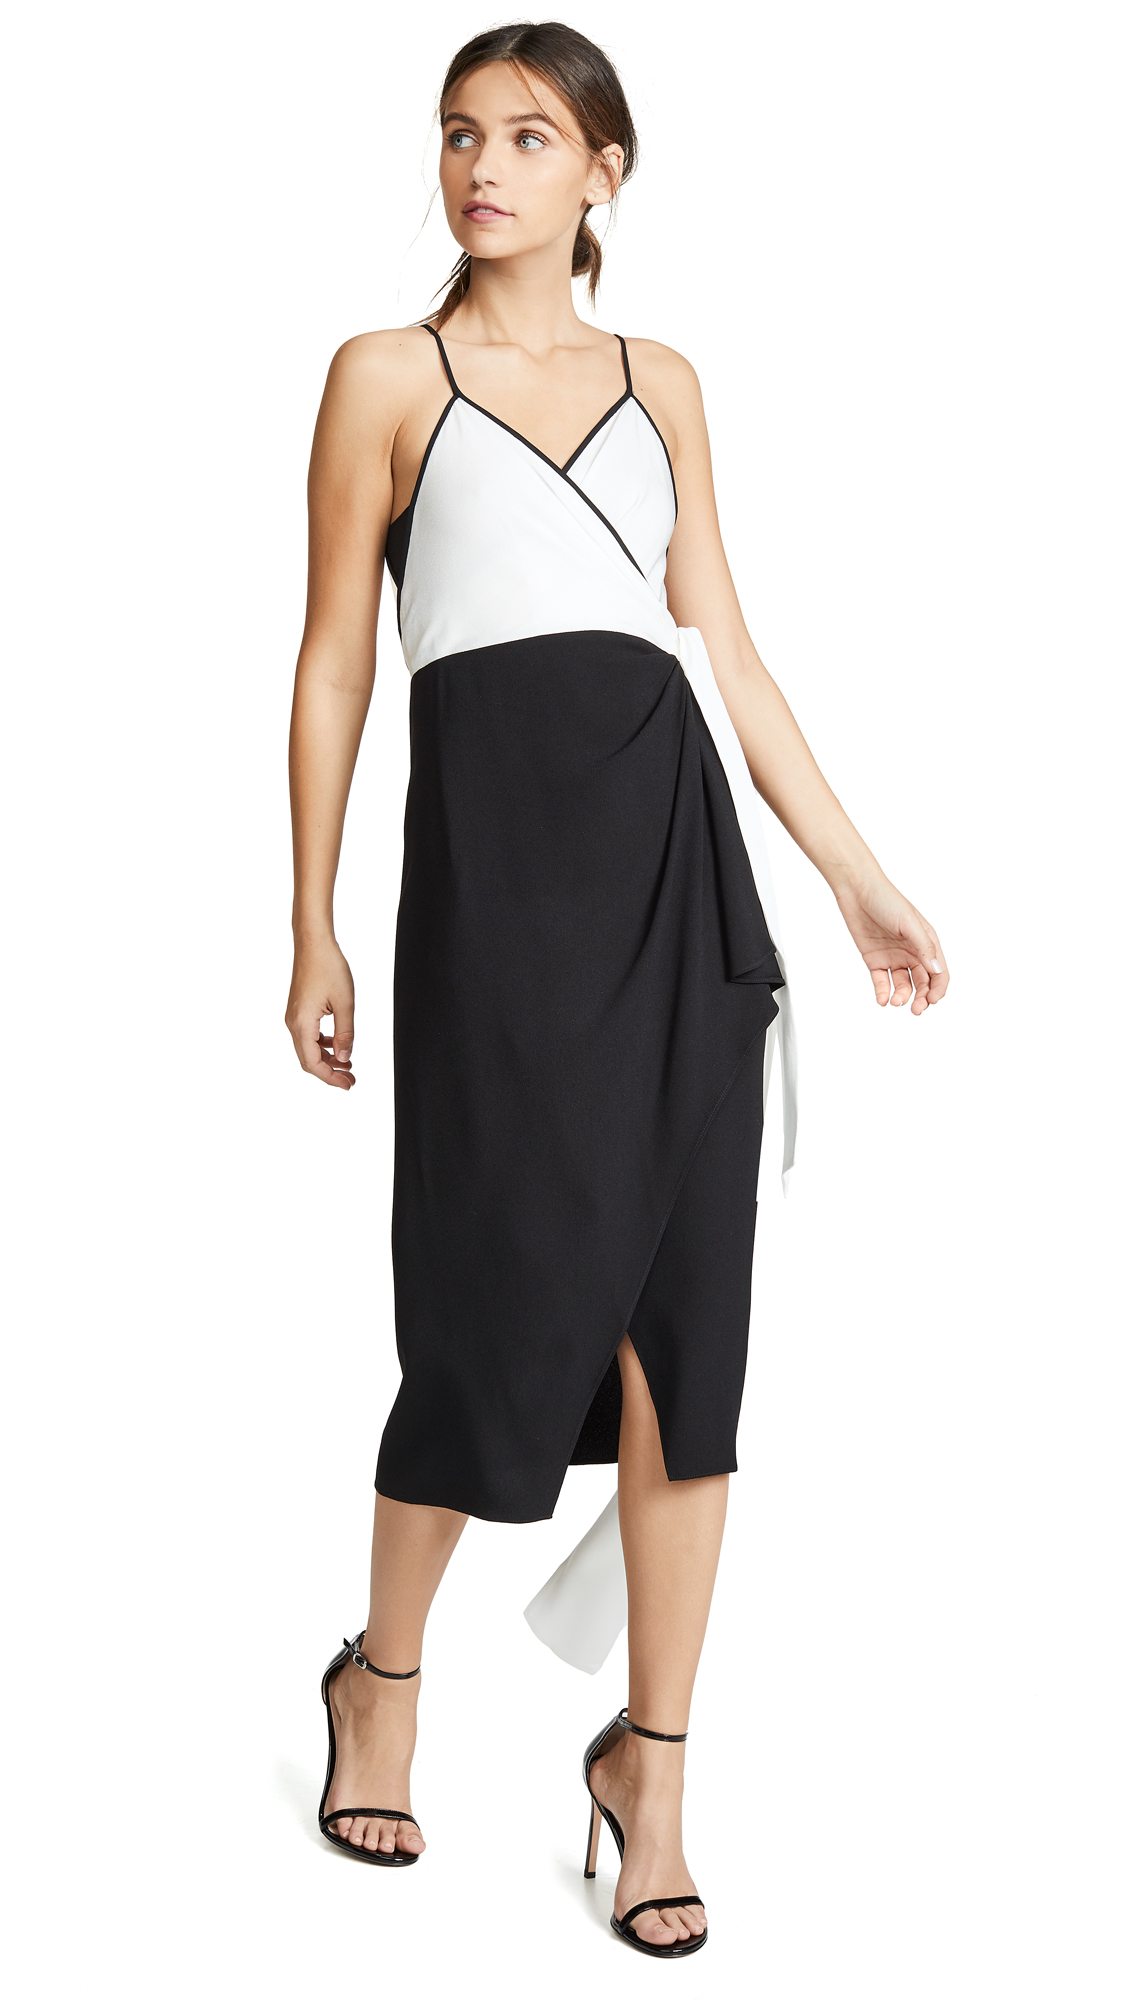 Diane von Furstenberg Avila Dress - Ivory/Black